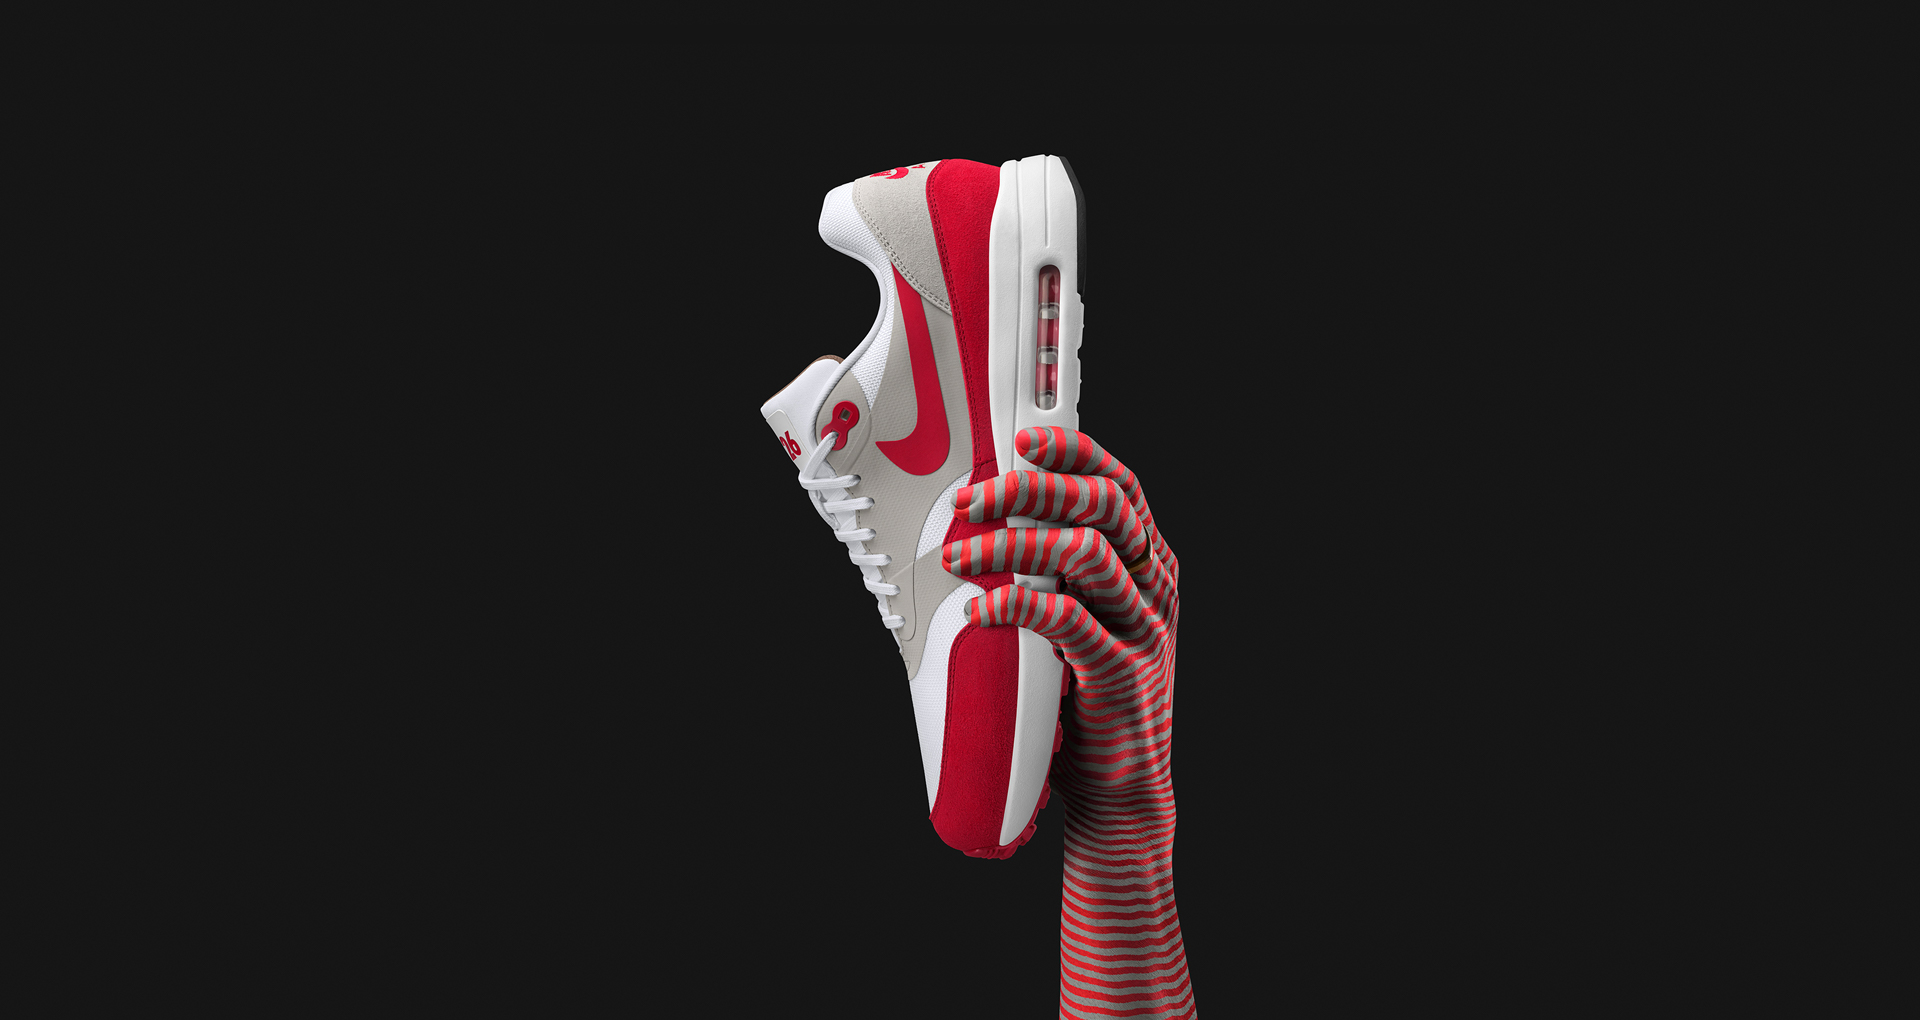 Nike Air Max 1 Ultra 2.0 Flyknit (University Red & Black) End